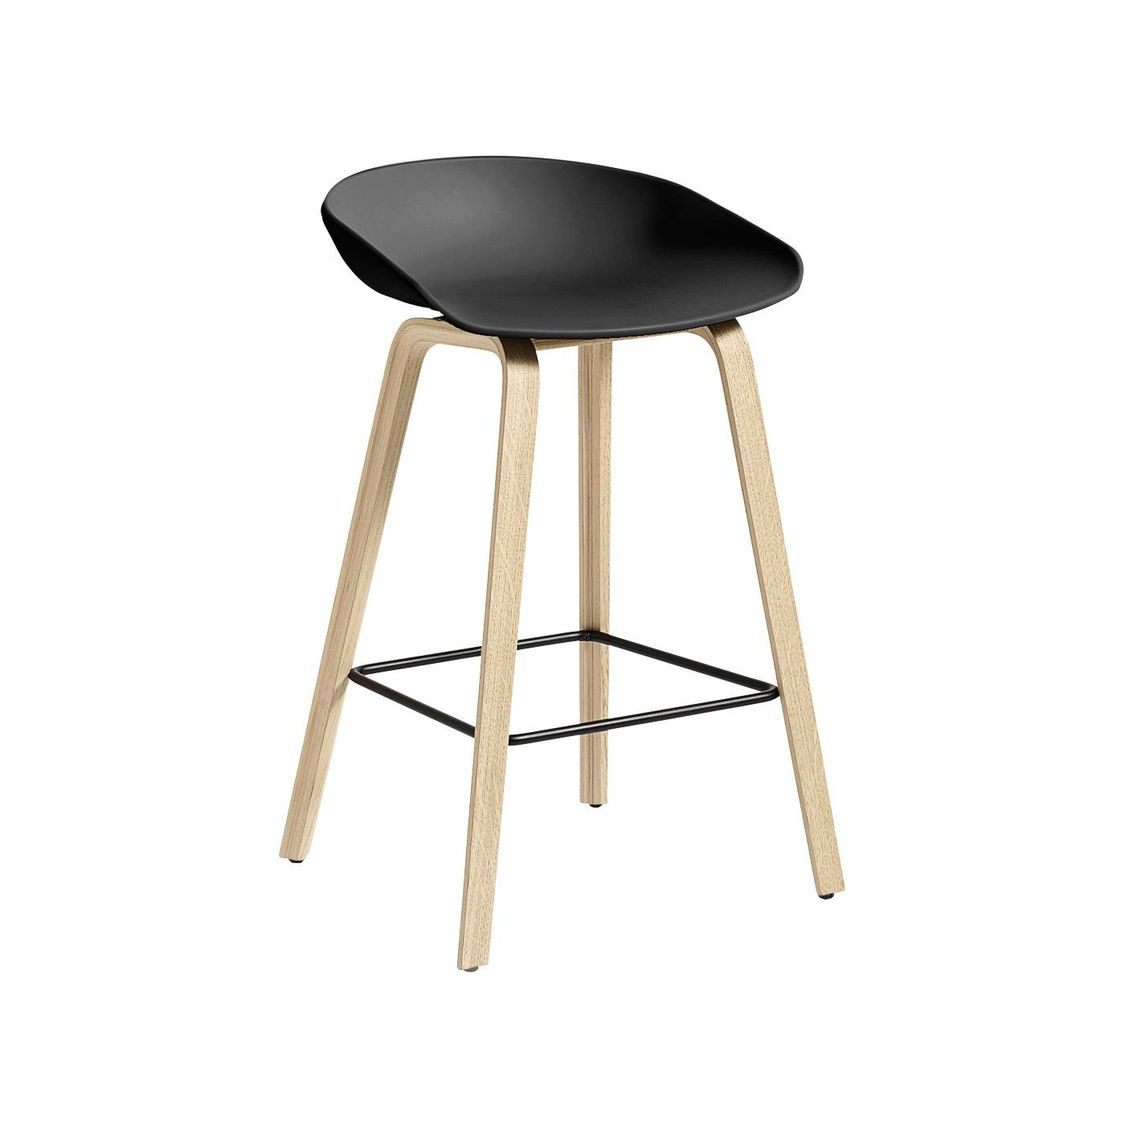 About A Stool Aas32 Tabouret De Bar 65cm Hay